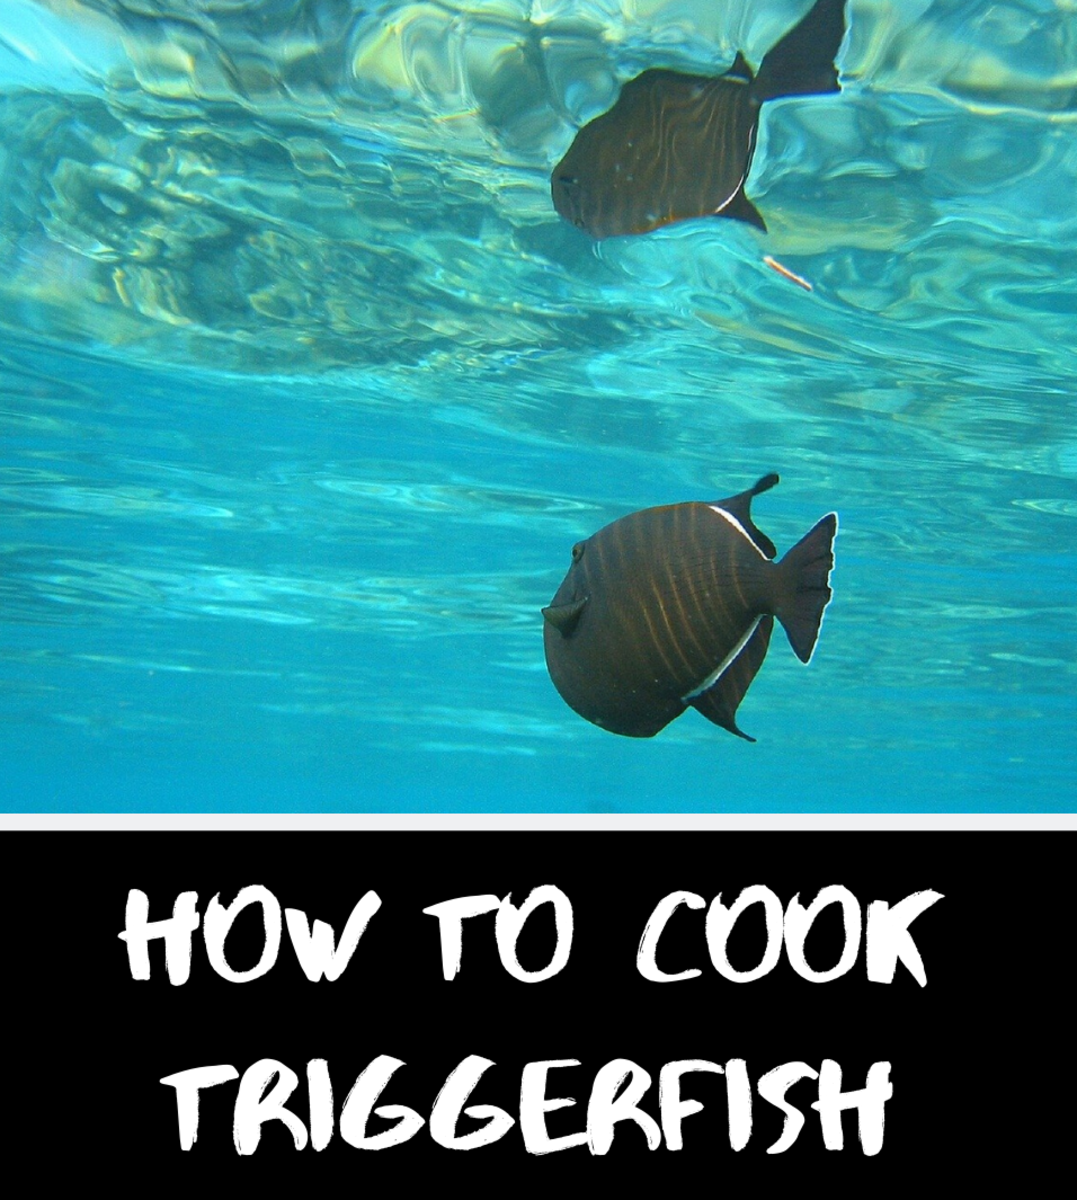 Triggerfish is rarely served, but it's truly delicious. Learn how to cook it right.